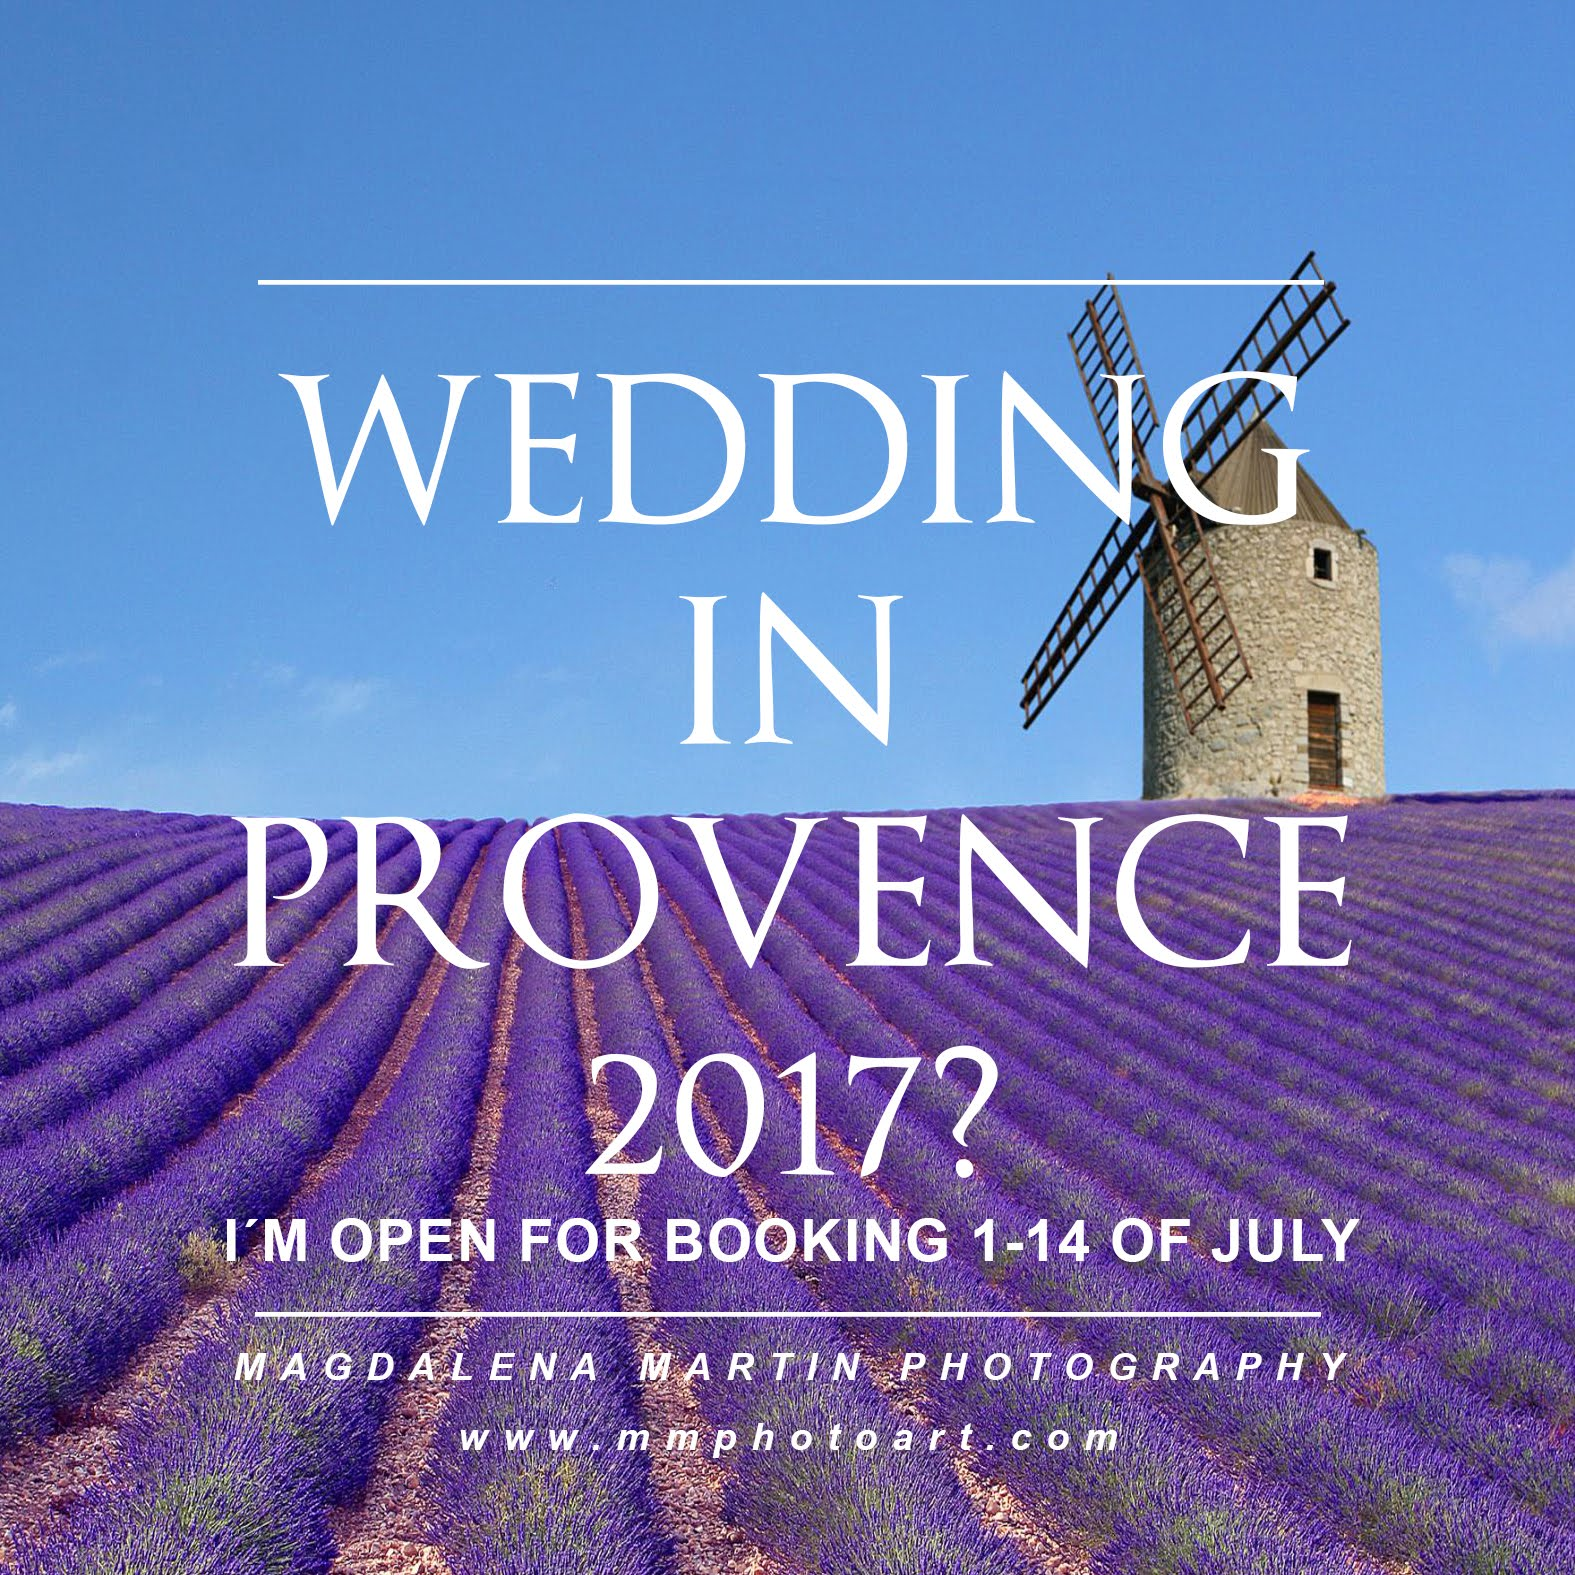 wedding in provence?